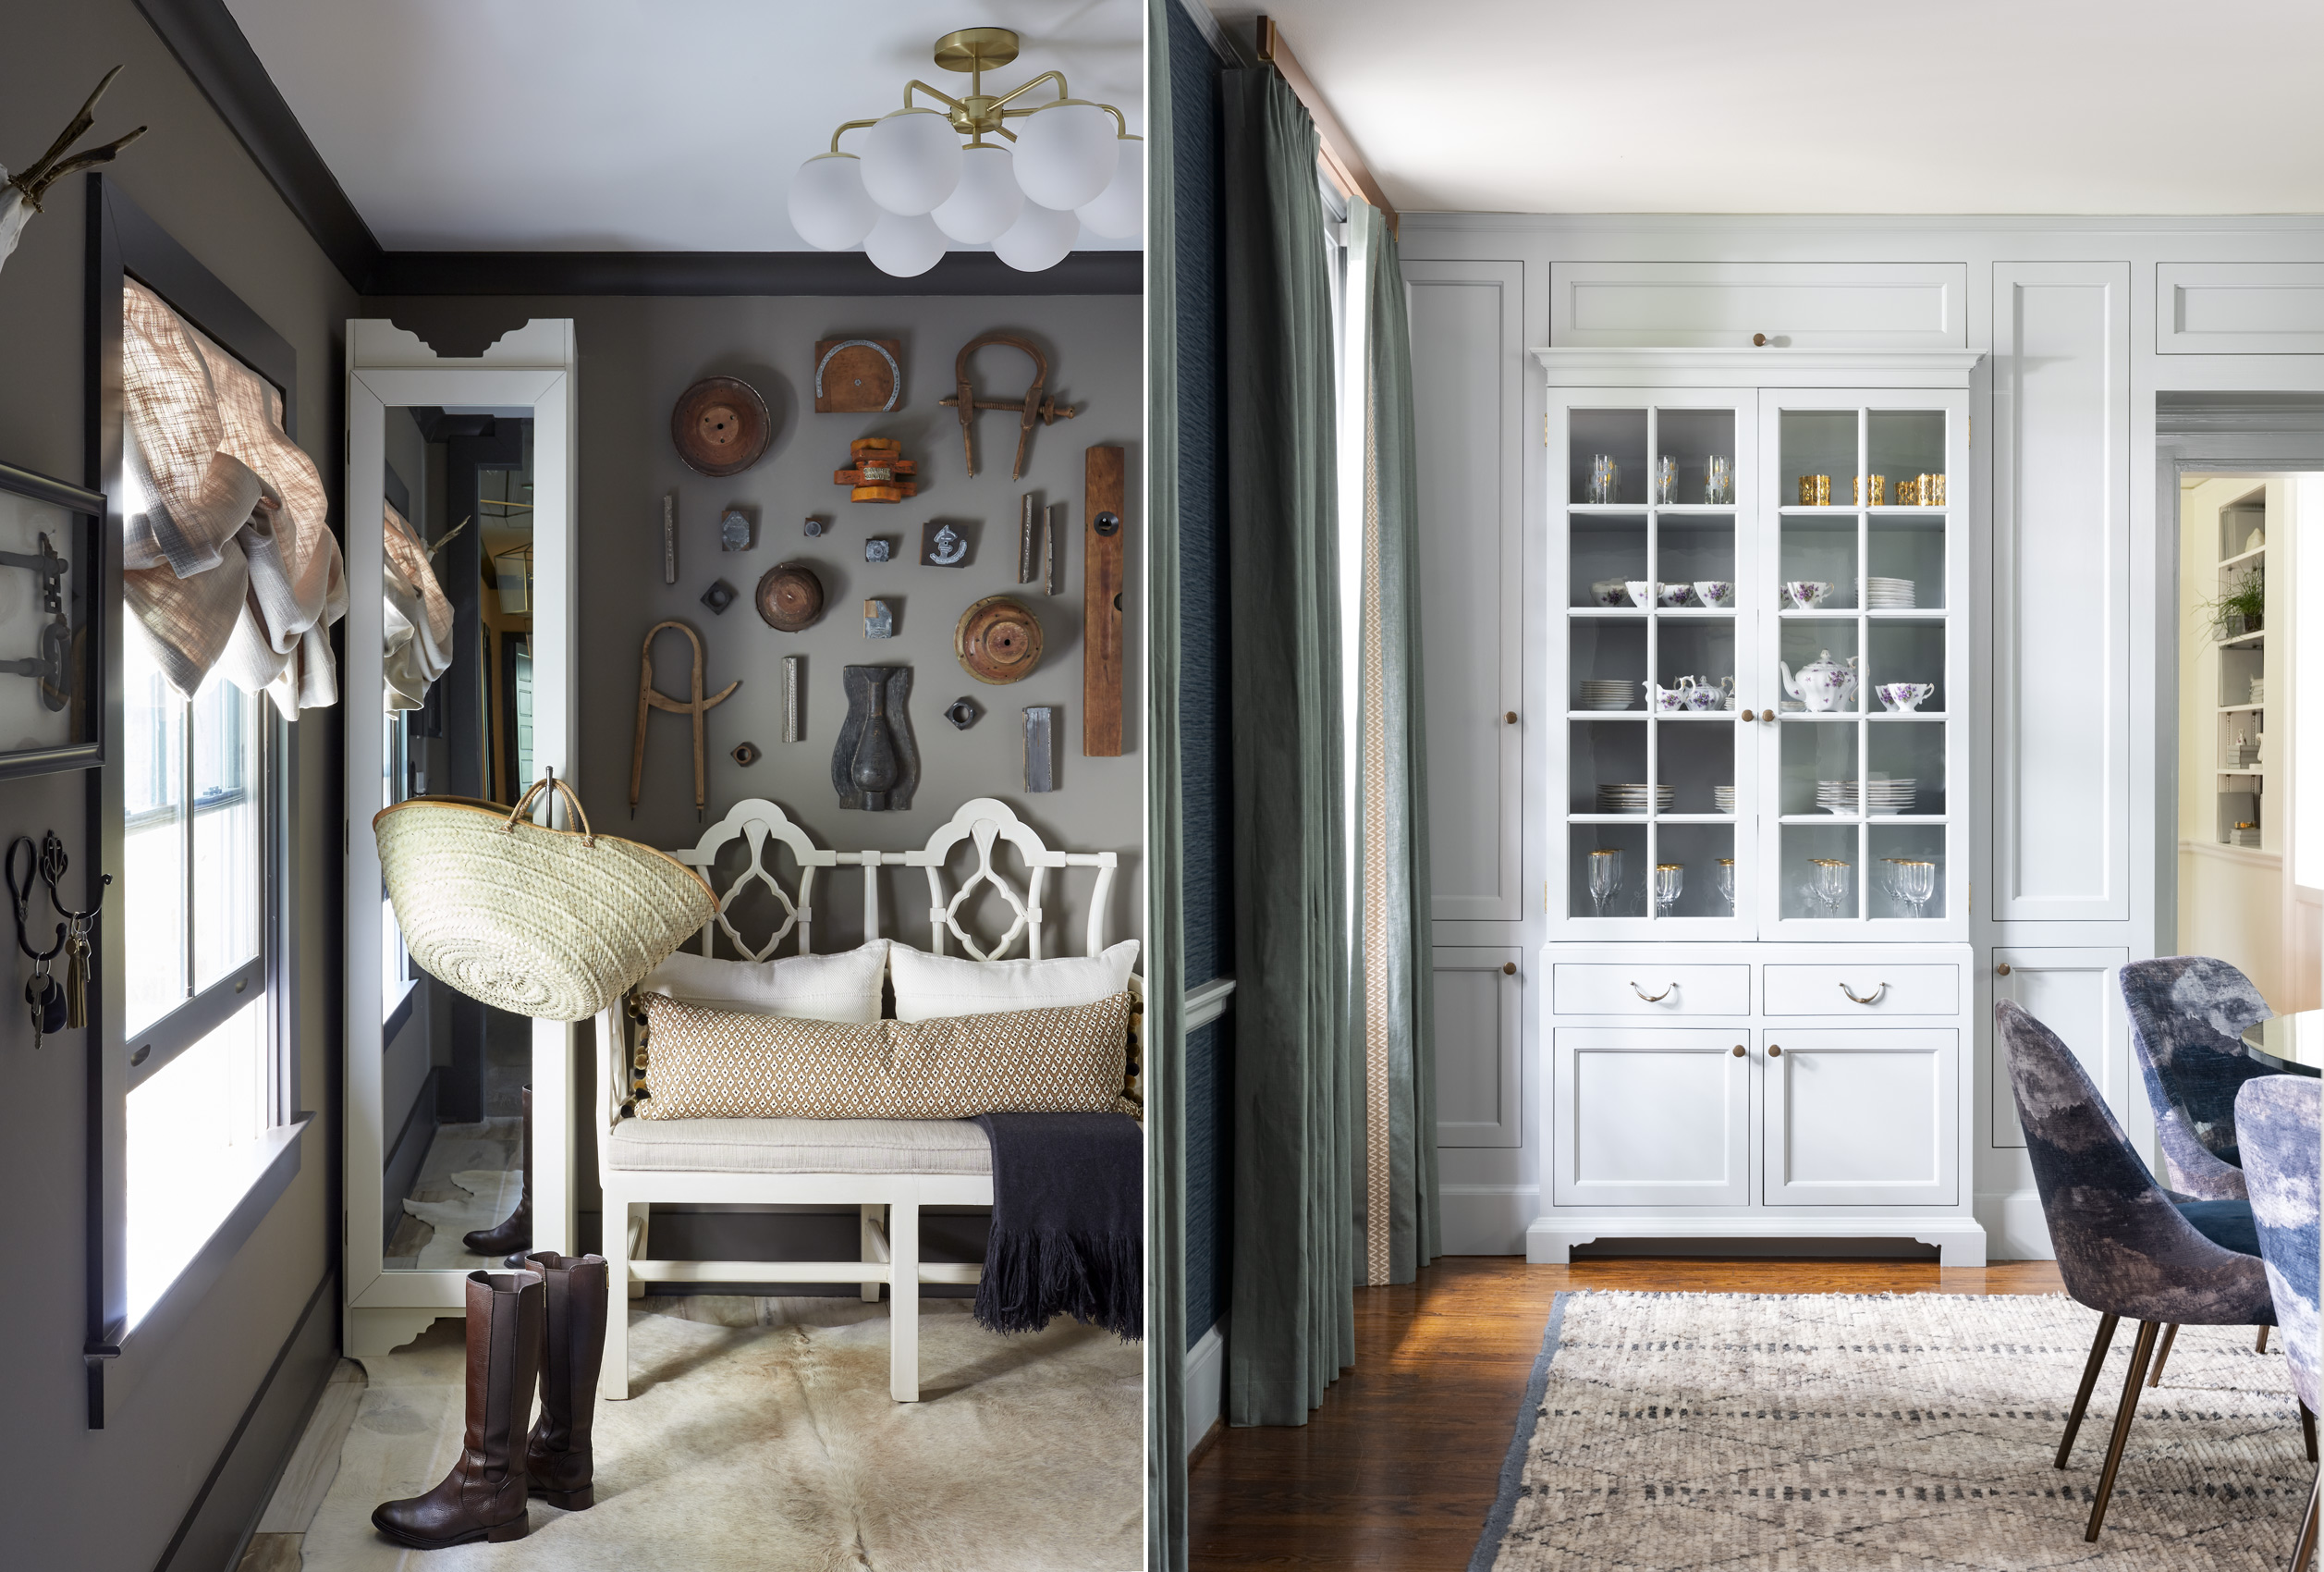 Kristin Kong interiors mudroom and dining room, Mali Azima photographer.